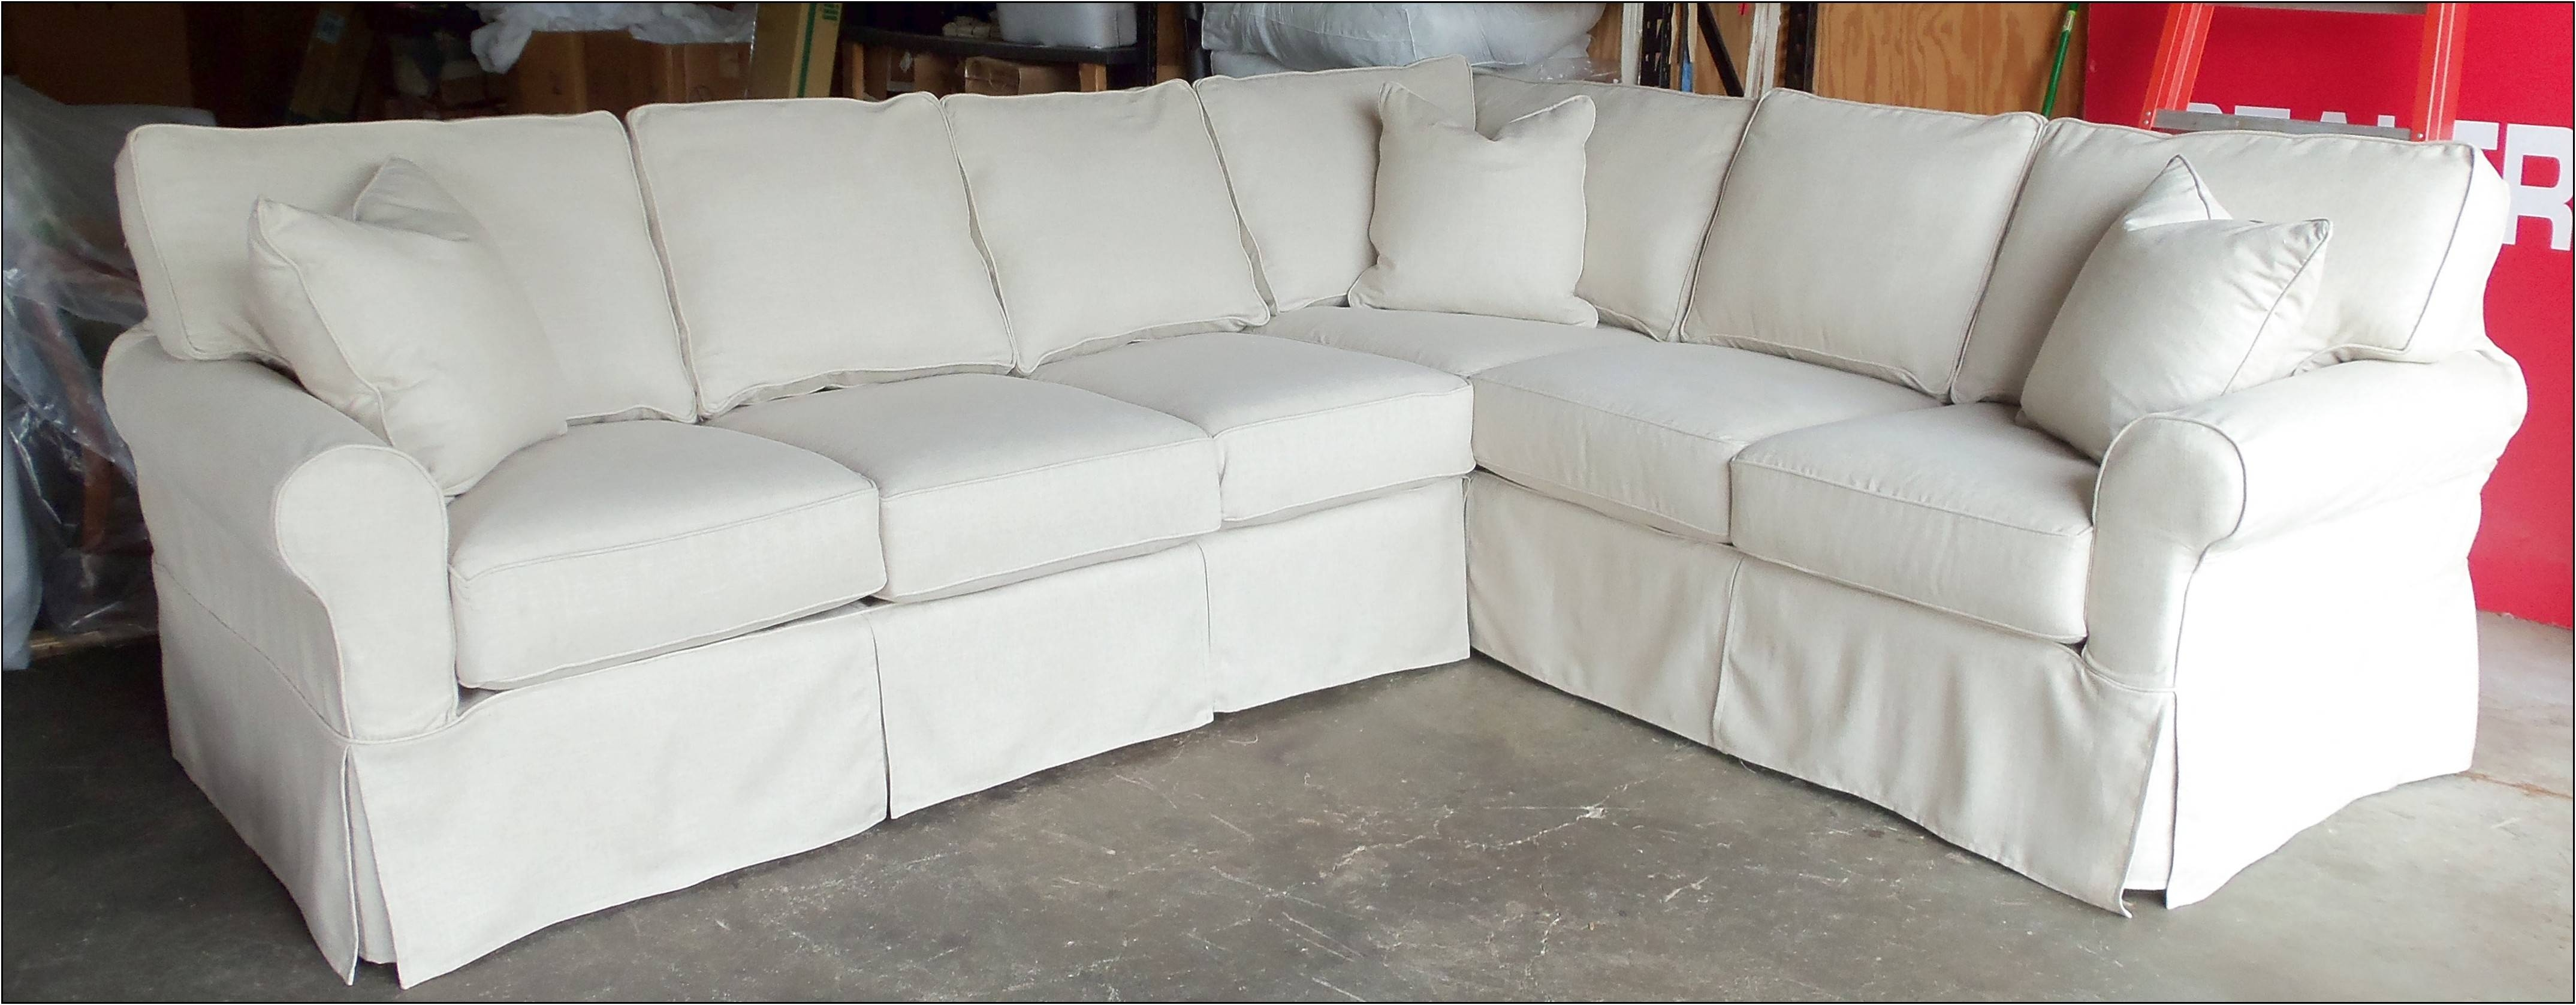 Furniture: Slipcovers For Sofas With Cushions Separate Within Shabby Chic Sectional Sofas Couches (View 10 of 15)